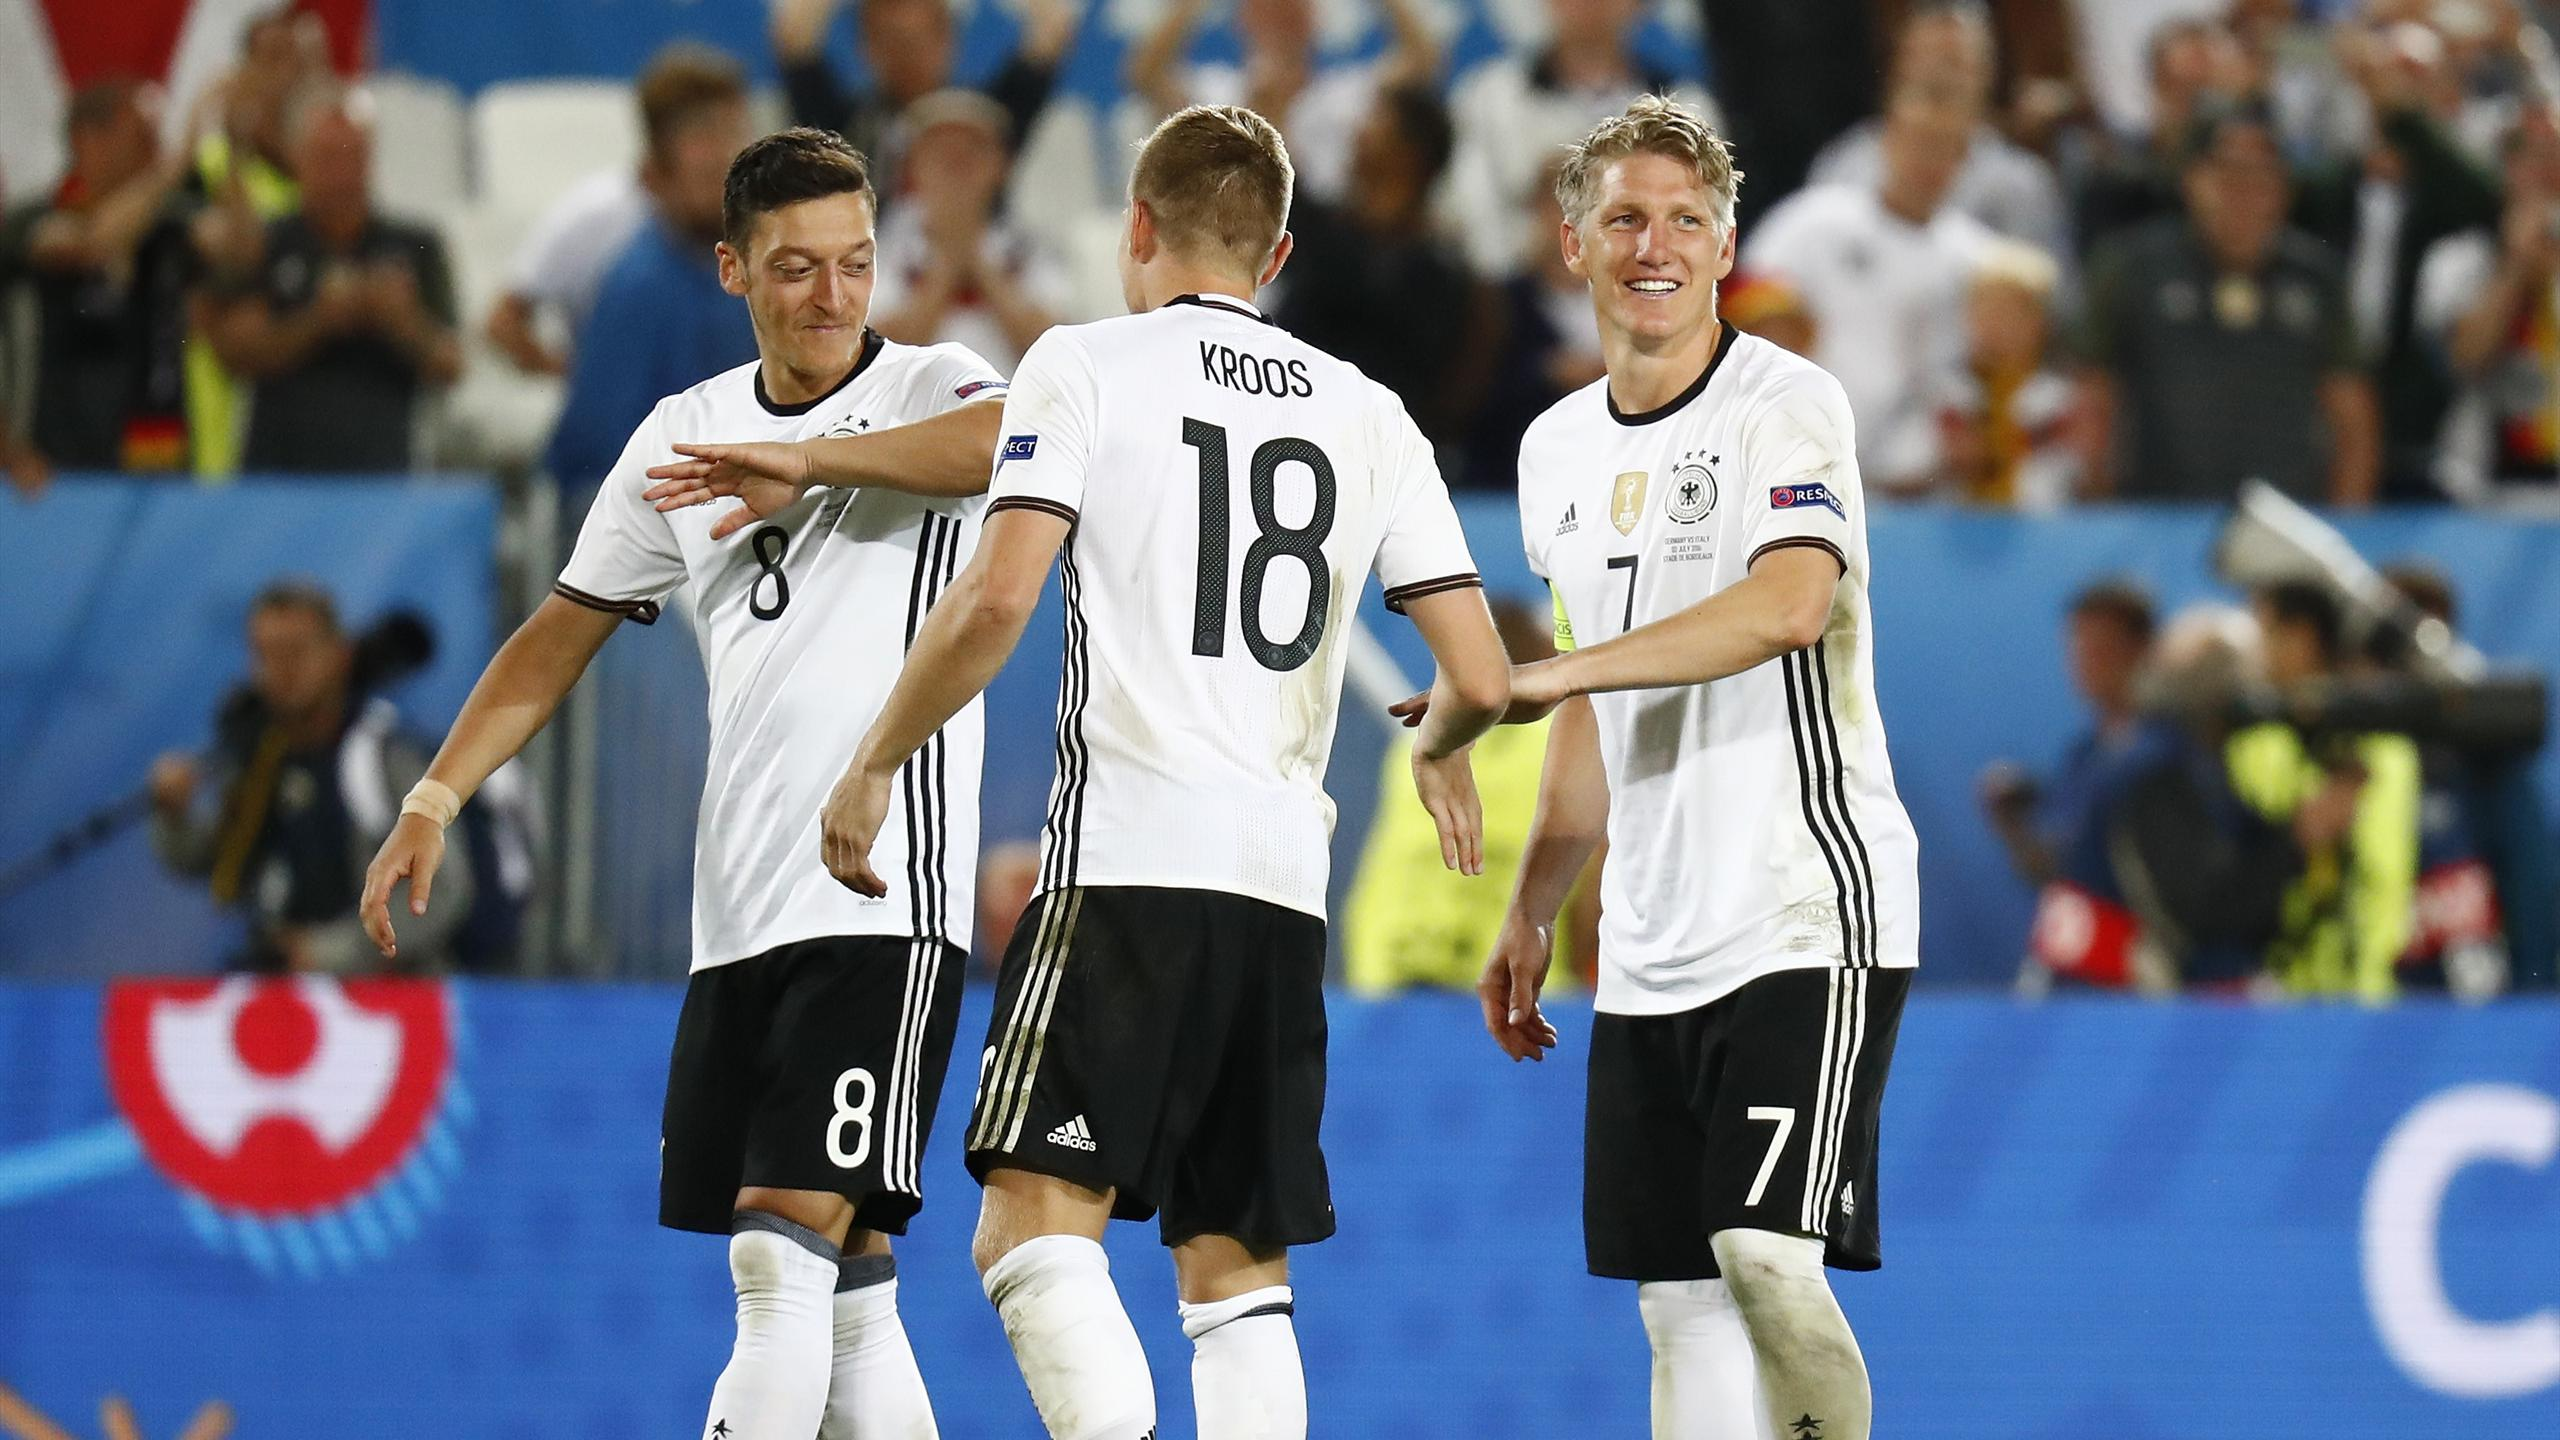 Toni Kroos is congratulated by Mesut Ozil and Bastian Schweinsteiger